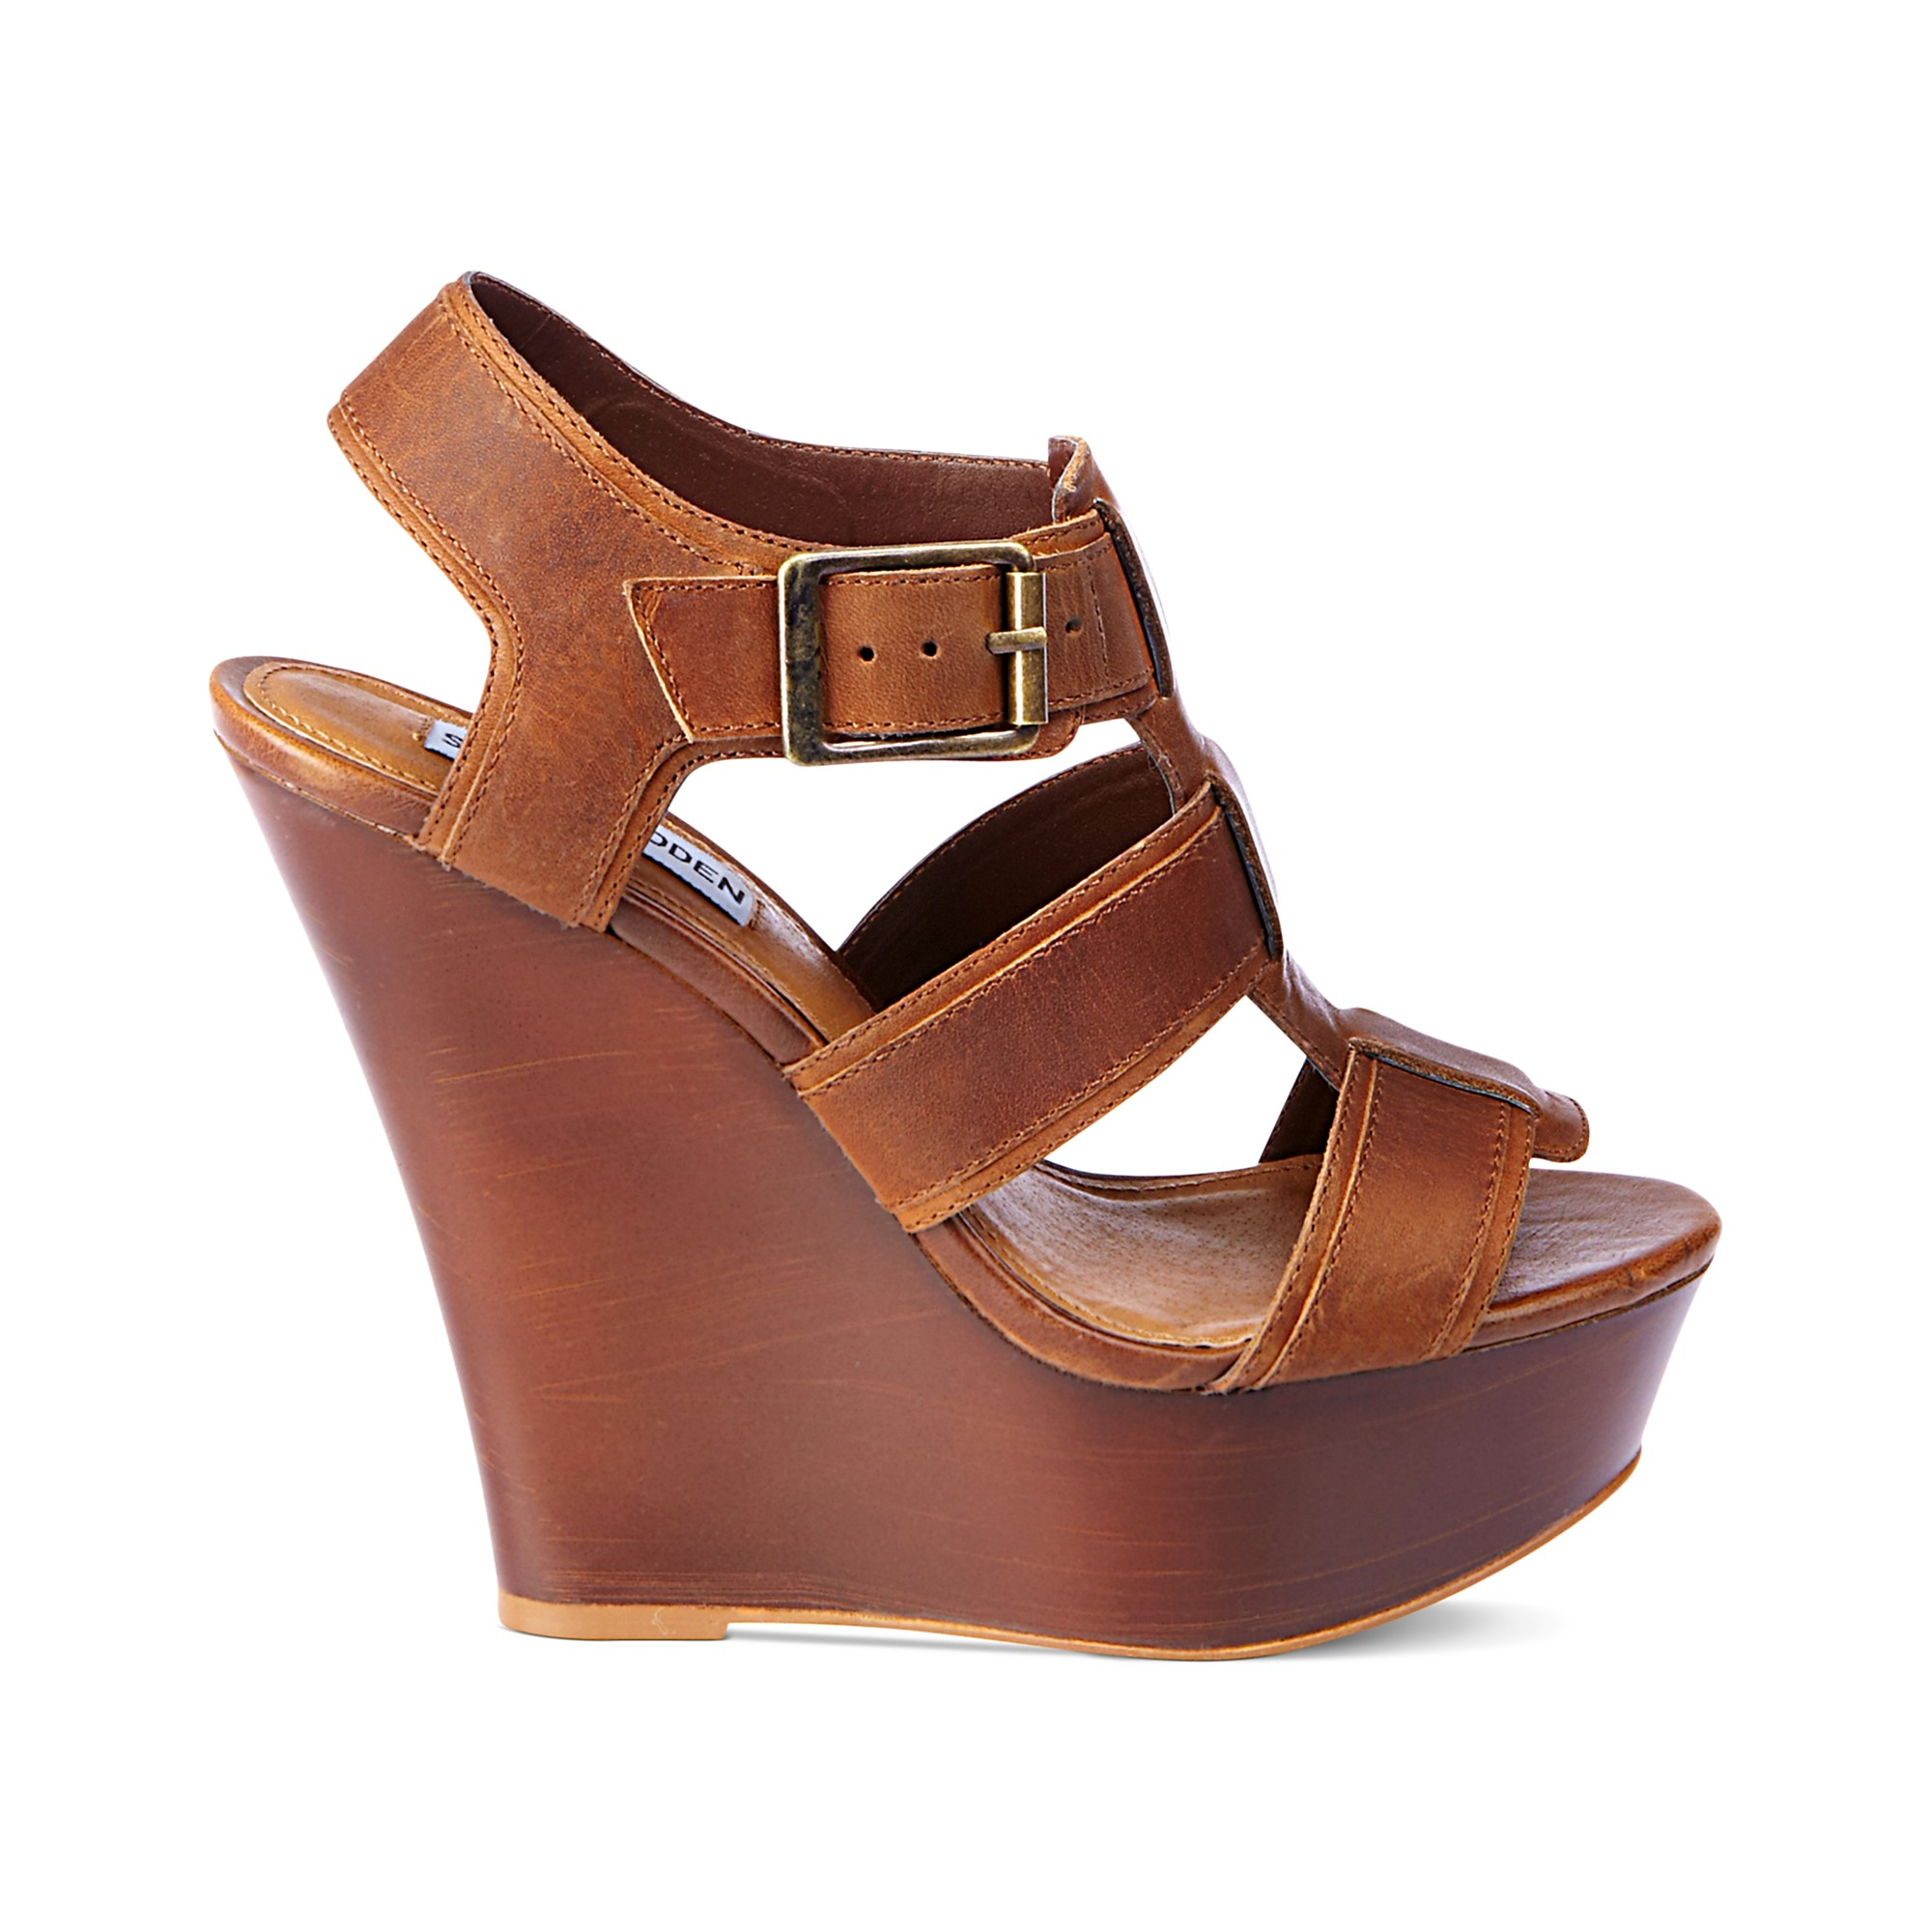 43c6054ce11 Steve Madden Brown Wanting Platform Wedge Sandals